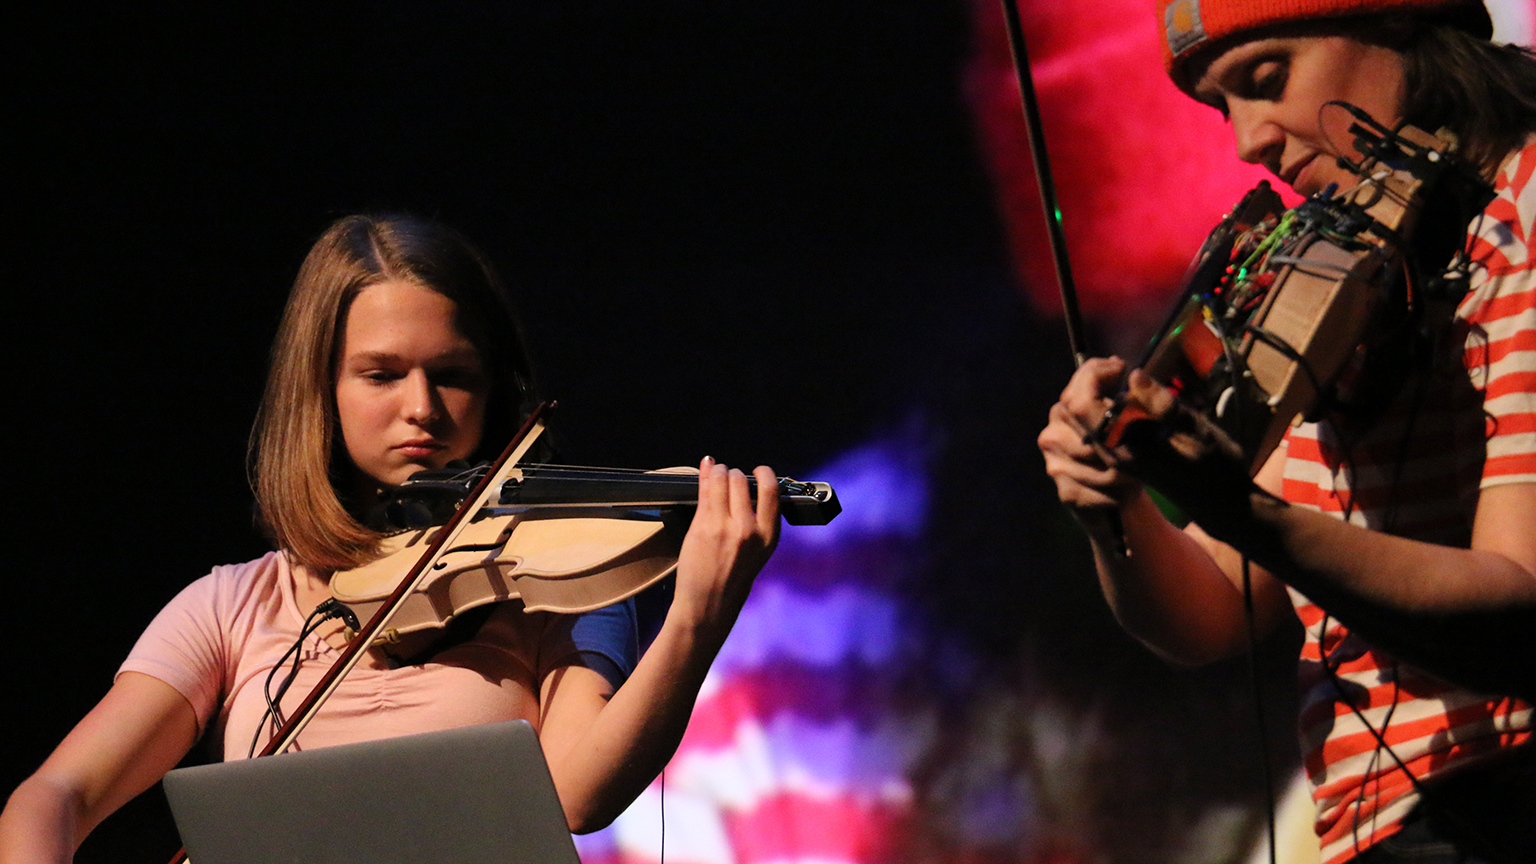 A student playing a violin in concert next to a creator with a modified violin.